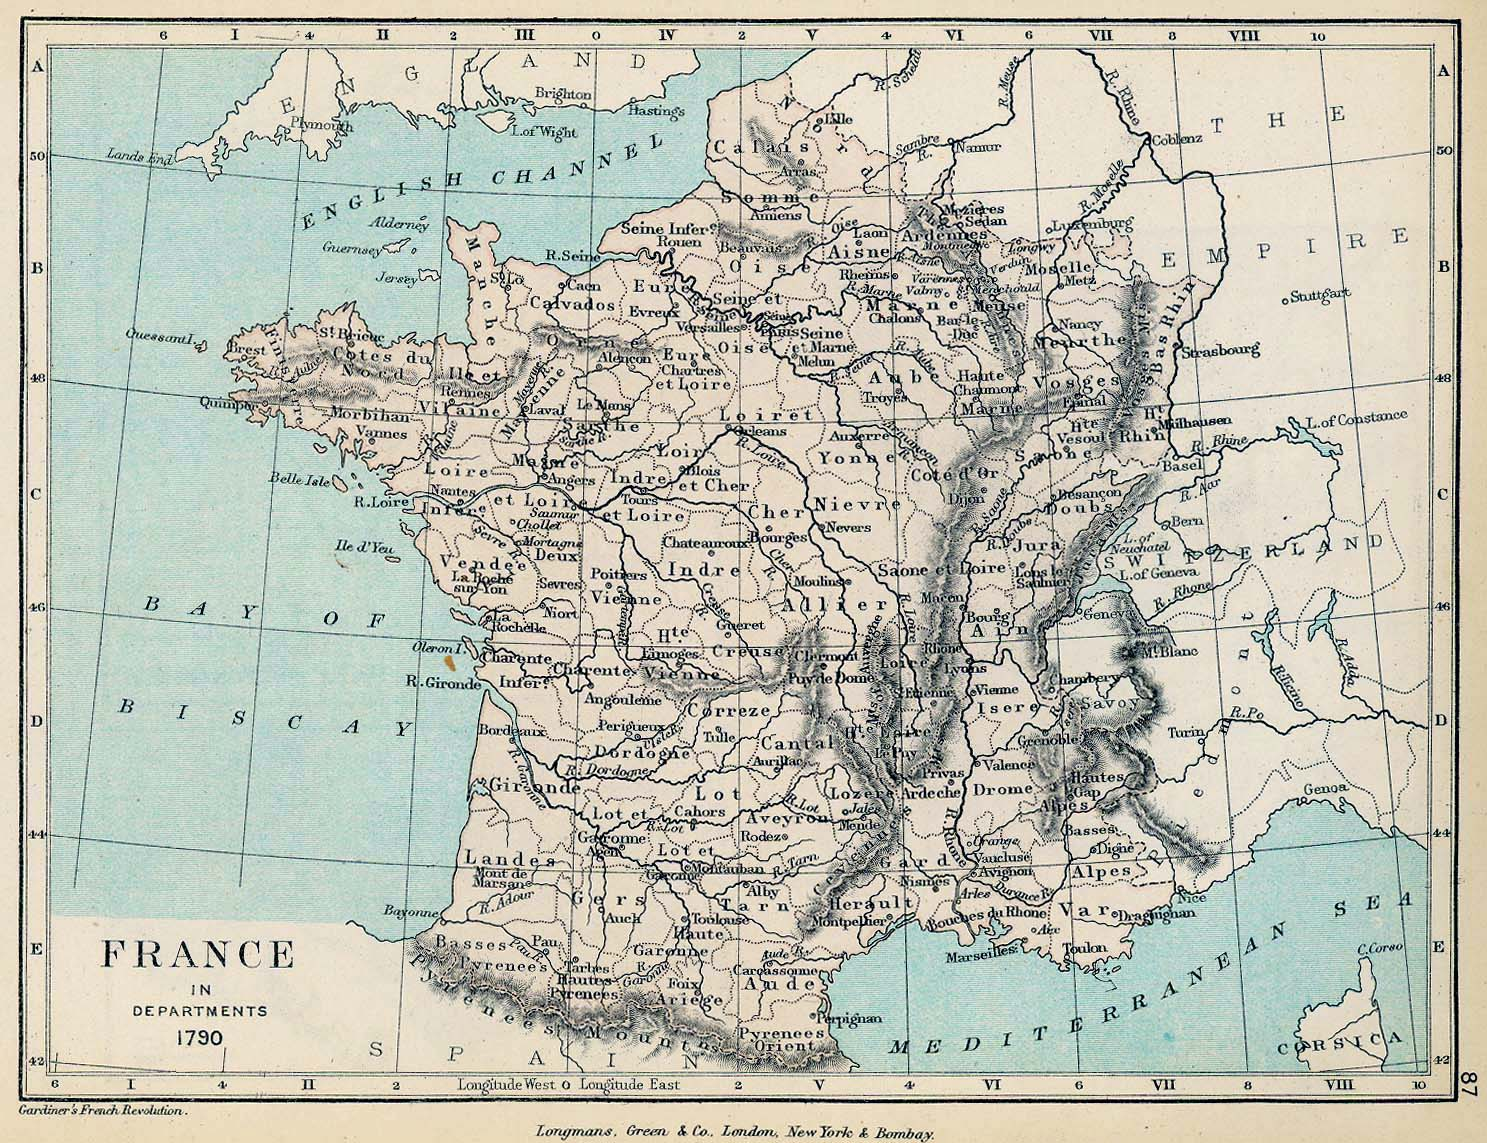 Map of France in Departments 1790